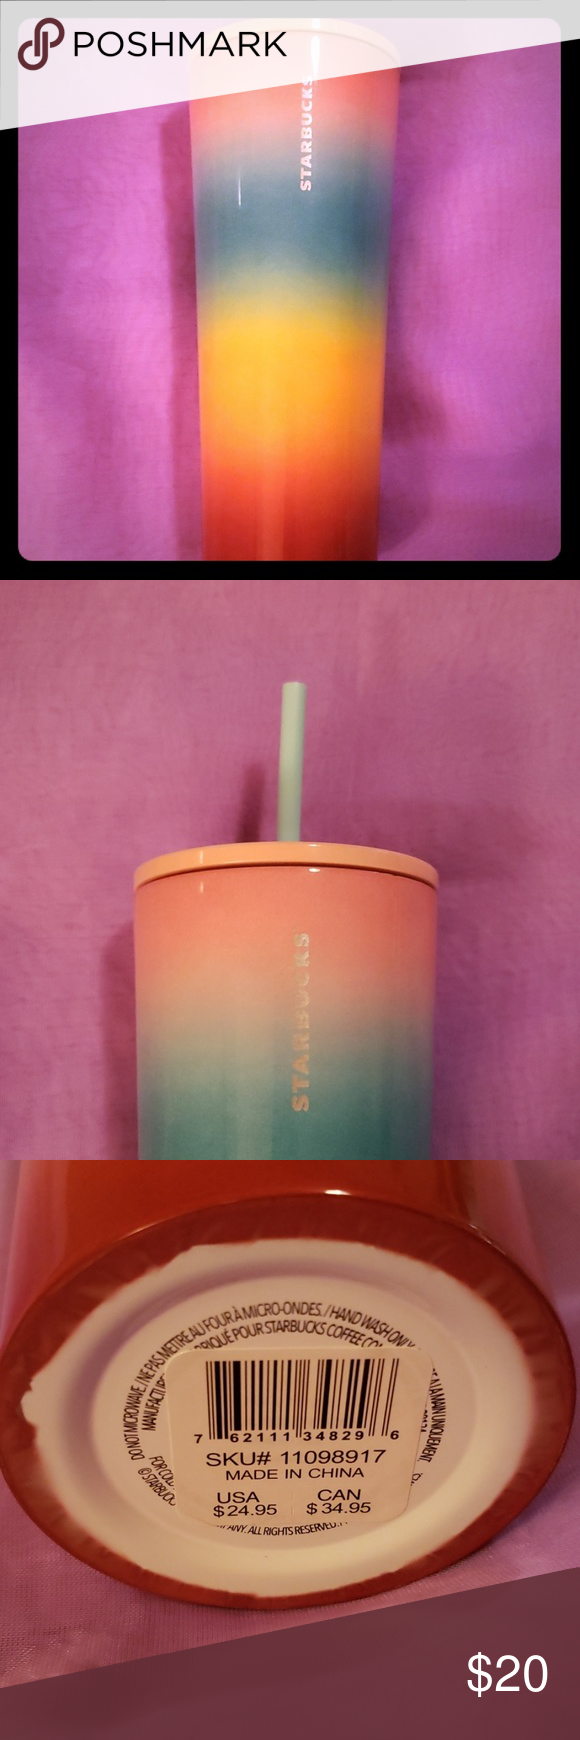 NWT!! 2019 Starbucks Frappuccino Cup!! NWT!! Limited Edition!! Never Used Starbucks COLD insulated cup Multicolored and Large Sized Cold Beverage Cup Starbucks Accessories #starbucksfrappuccino NWT!! 2019 Starbucks Frappuccino Cup!! NWT!! Limited Edition!! Never Used Starbucks COLD insulated cup Multicolored and Large Sized Cold Beverage Cup Starbucks Accessories #starbucksfrappuccino NWT!! 2019 Starbucks Frappuccino Cup!! NWT!! Limited Edition!! Never Used Starbucks COLD insulated cup Multicolo #starbucksfrappuccino